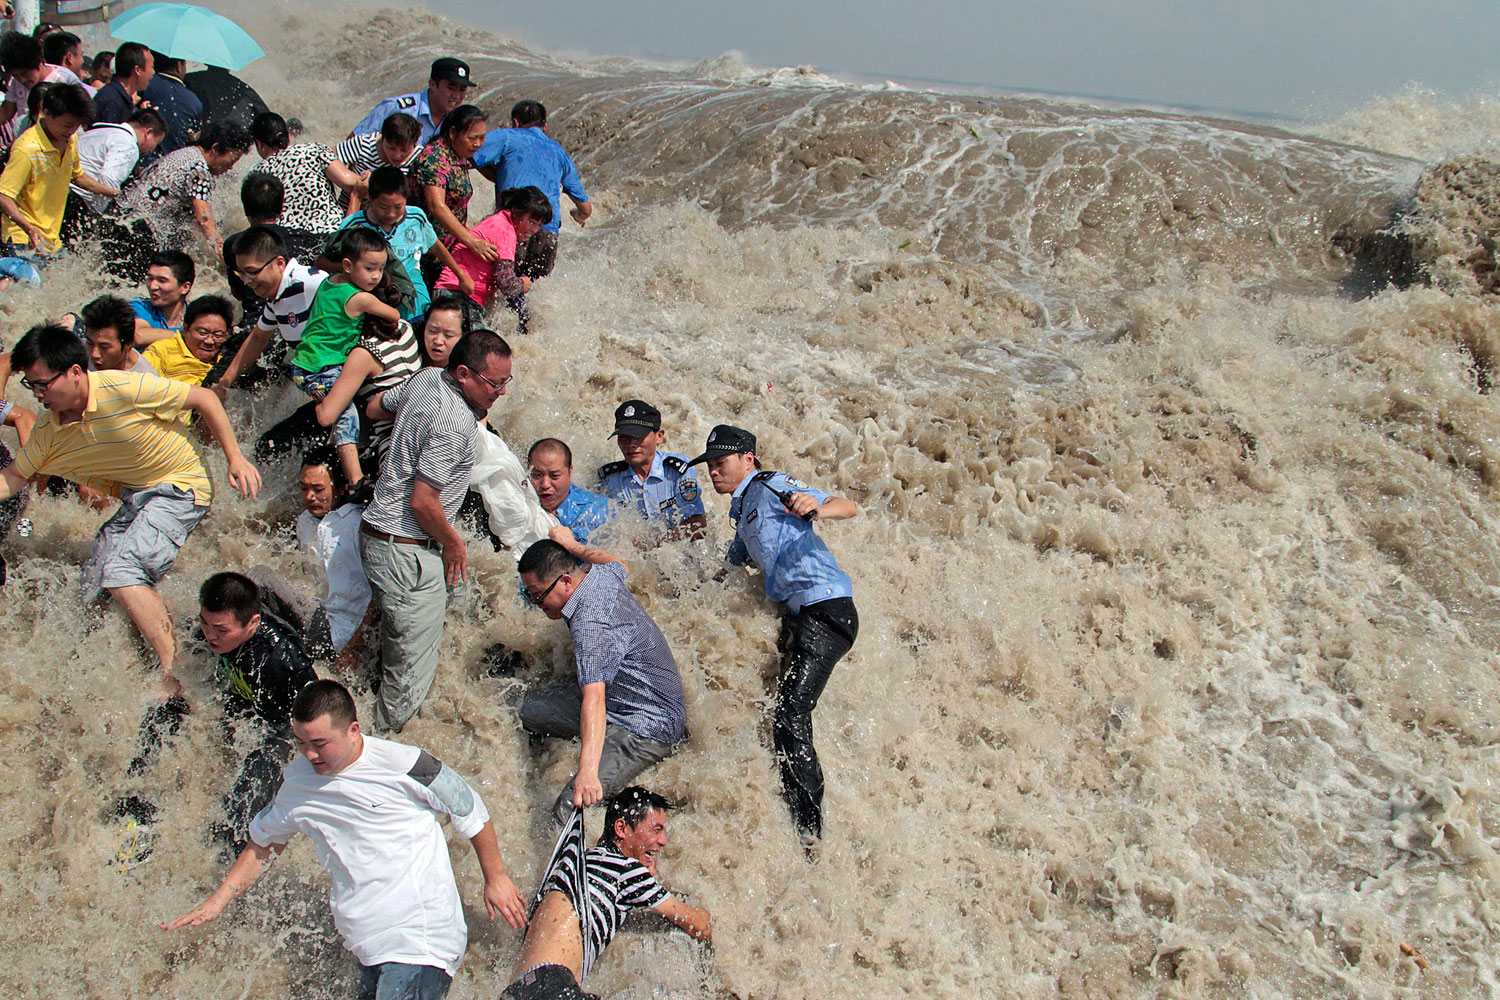 August 31, 2011. Policemen and residents run as waves from a tidal bore surge past a barrier on the banks of Qiantang River in Haining, Zhejiang province. As Typhoon Nanmadol approaches eastern China, the tides and waves in Qiantang River recorded its highest level in 10 years.